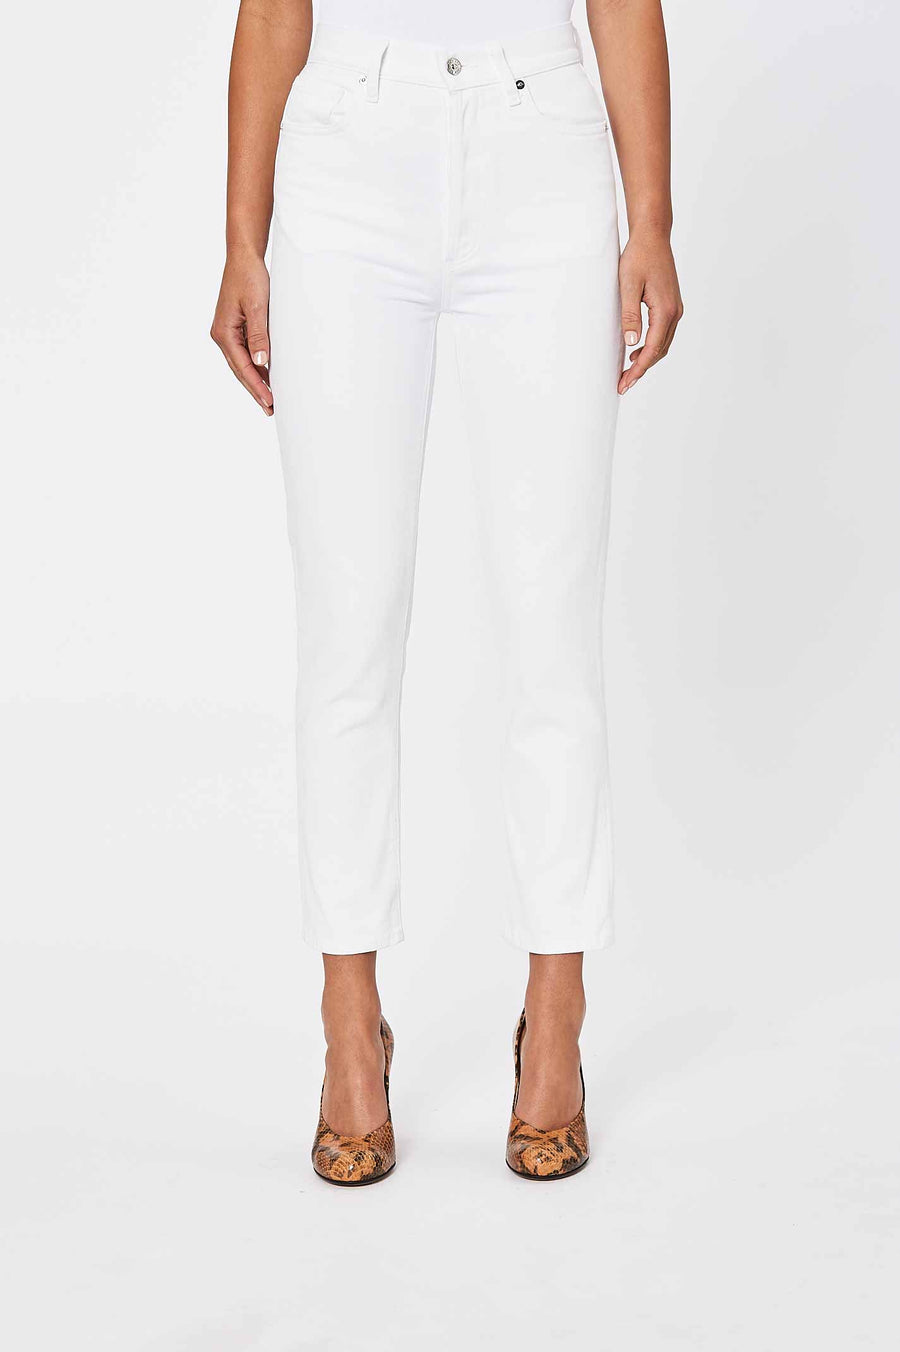 Straight leg jeans, cut high to create just enough room at the hips and thighs.